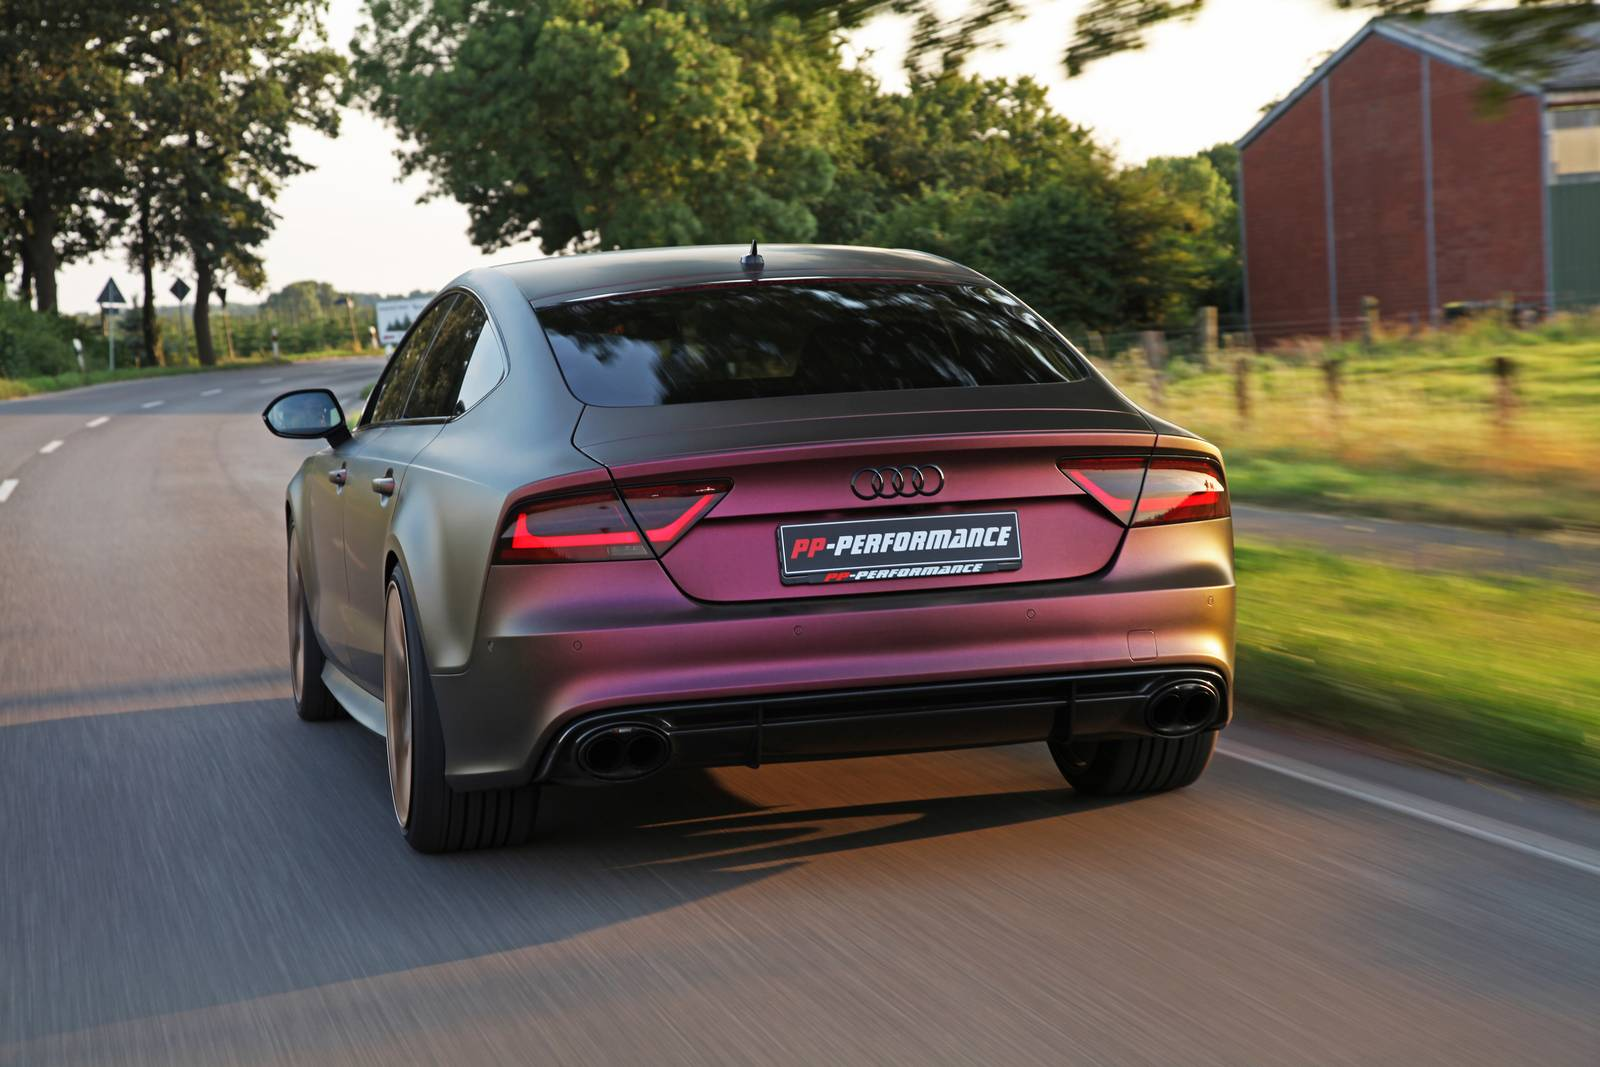 sparkling berry wrapped audi rs7 with 745hp by pp performance gtspirit. Black Bedroom Furniture Sets. Home Design Ideas